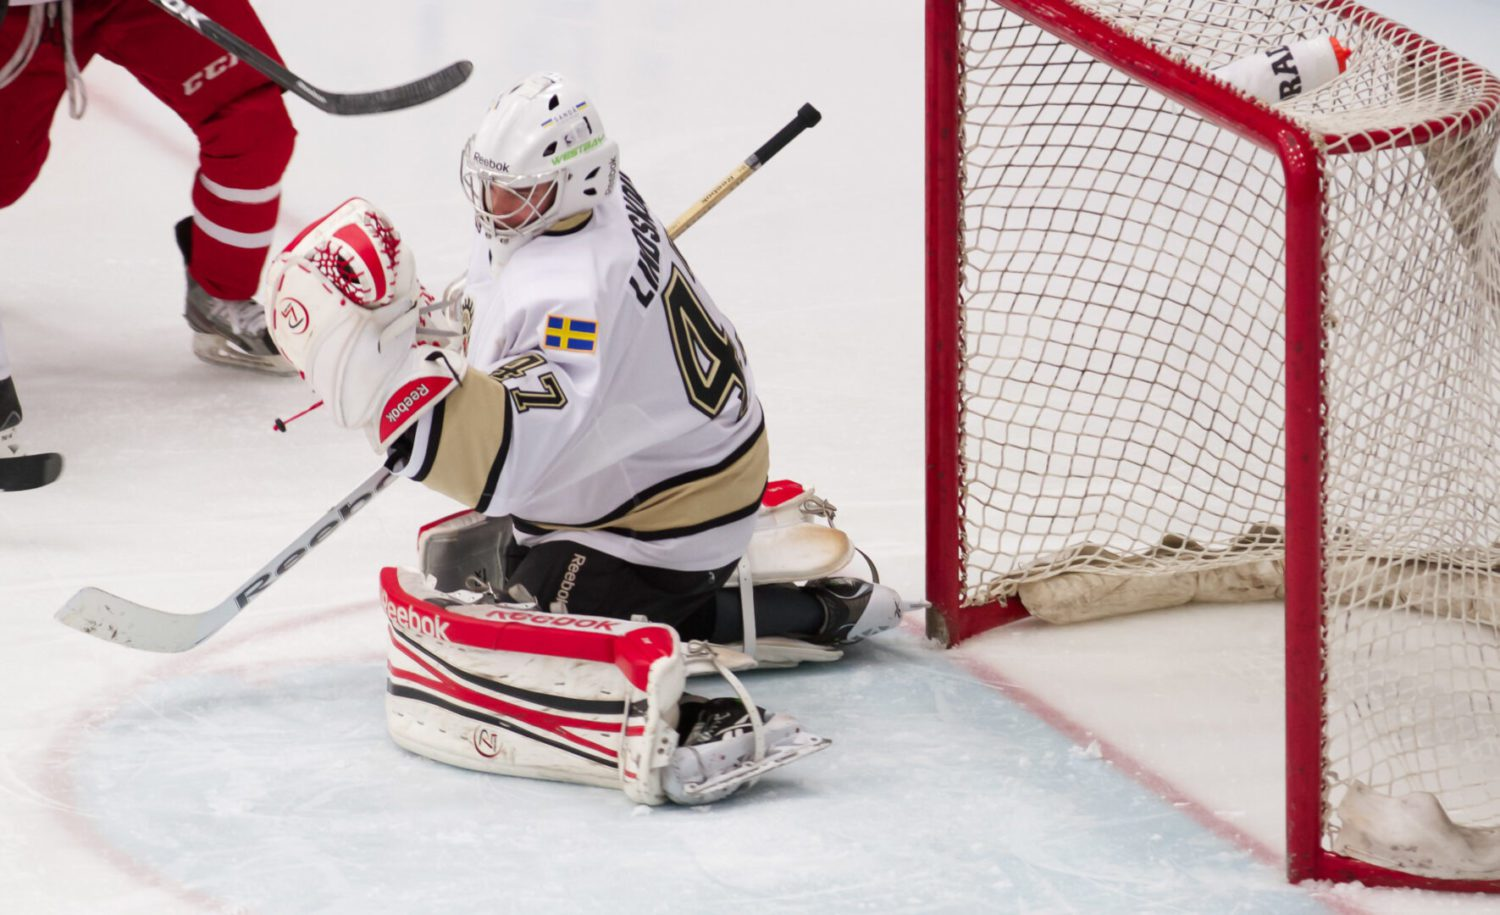 Muskegon Lumberjacks face huge playoff task against top-seeded Dubuque (Opinion)